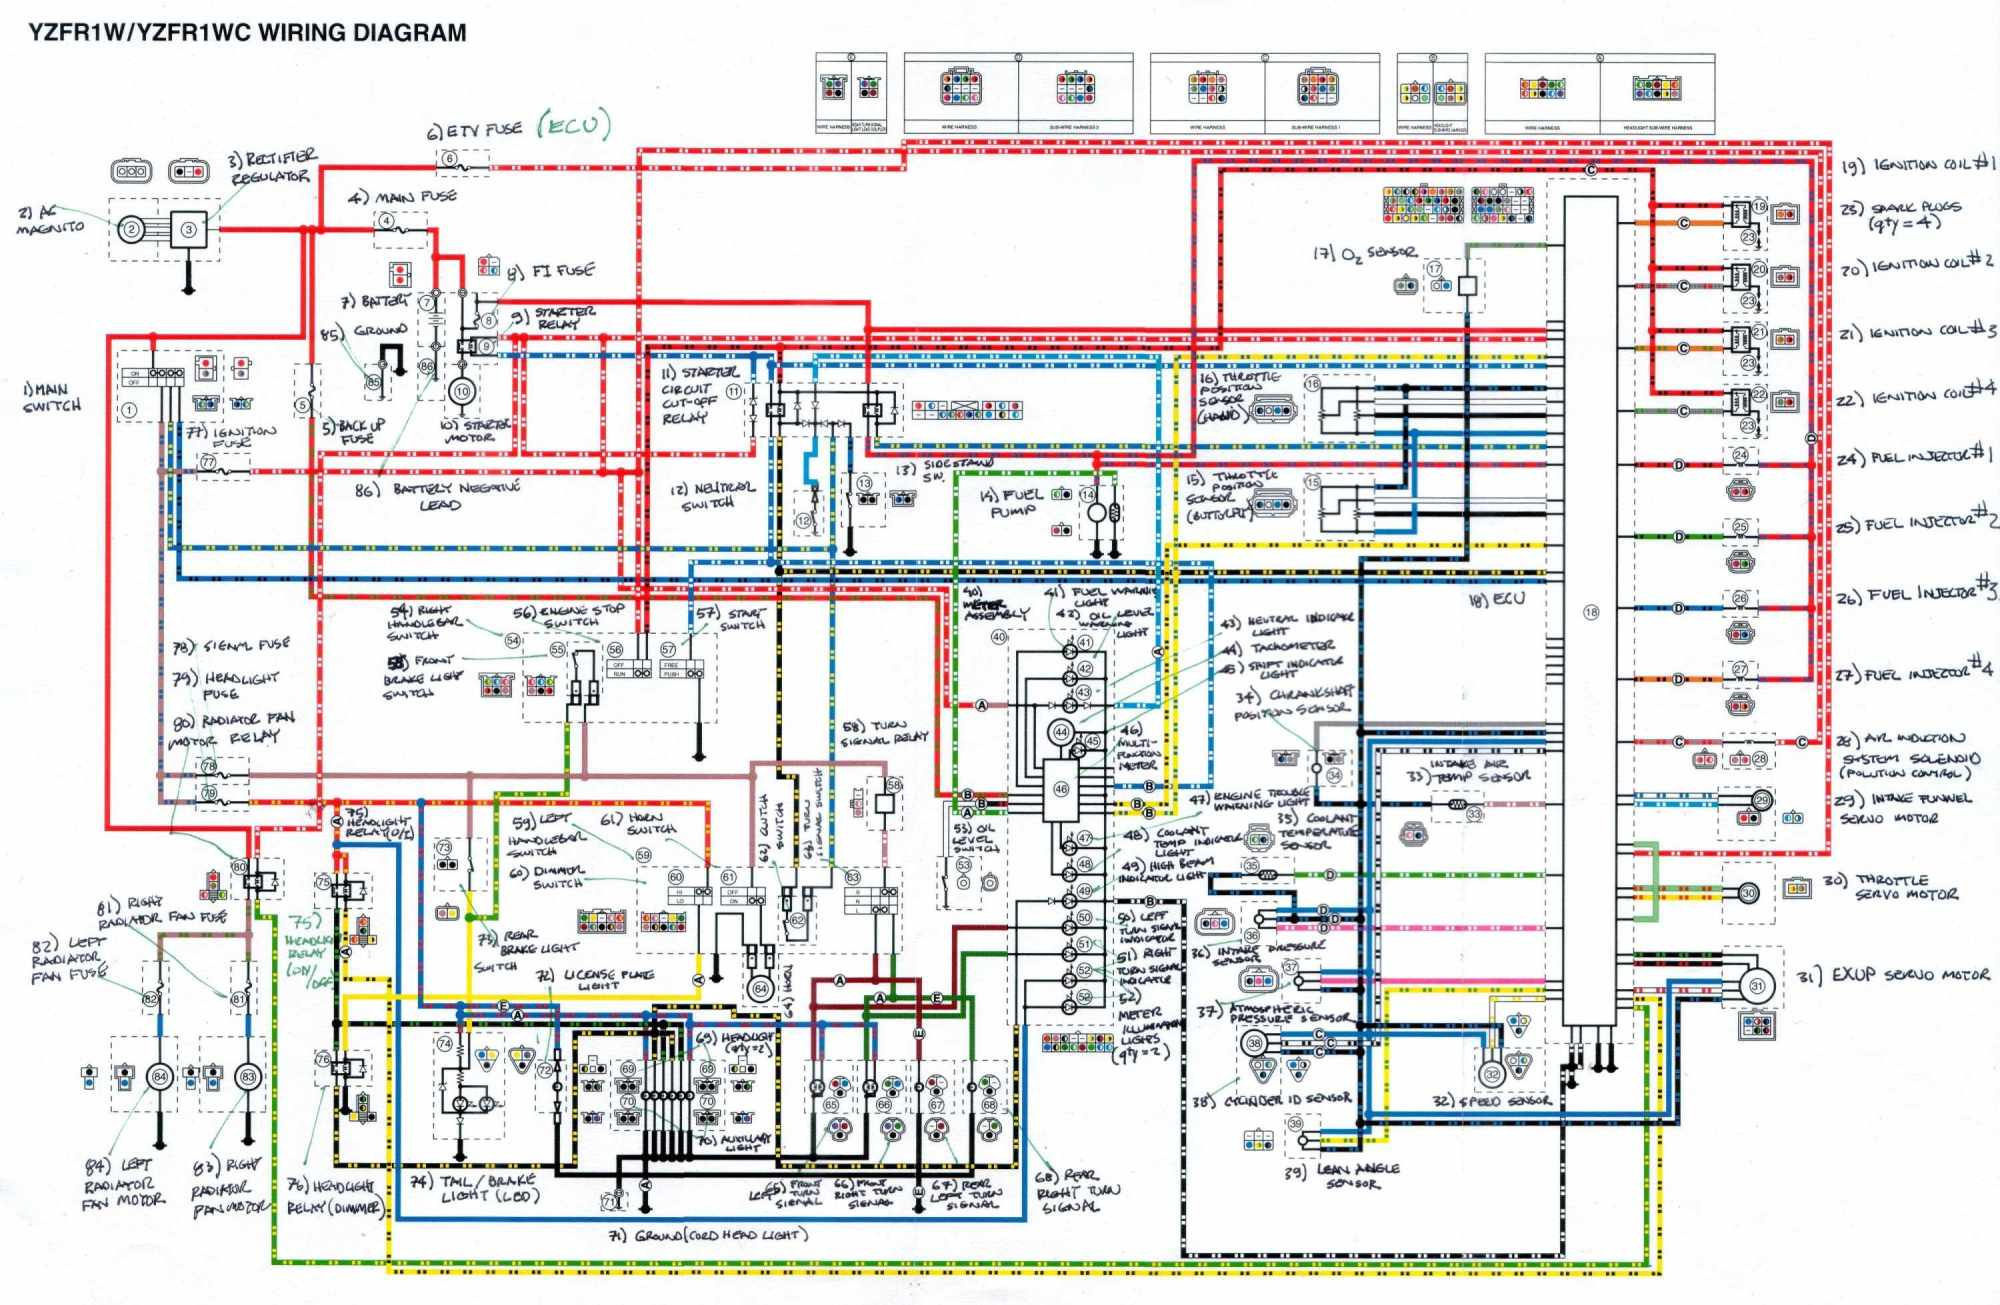 hight resolution of 1996 fzr 600 wiring diagram schematic data wiring diagram 1991 yamaha fzr 600 wiring diagram fzr